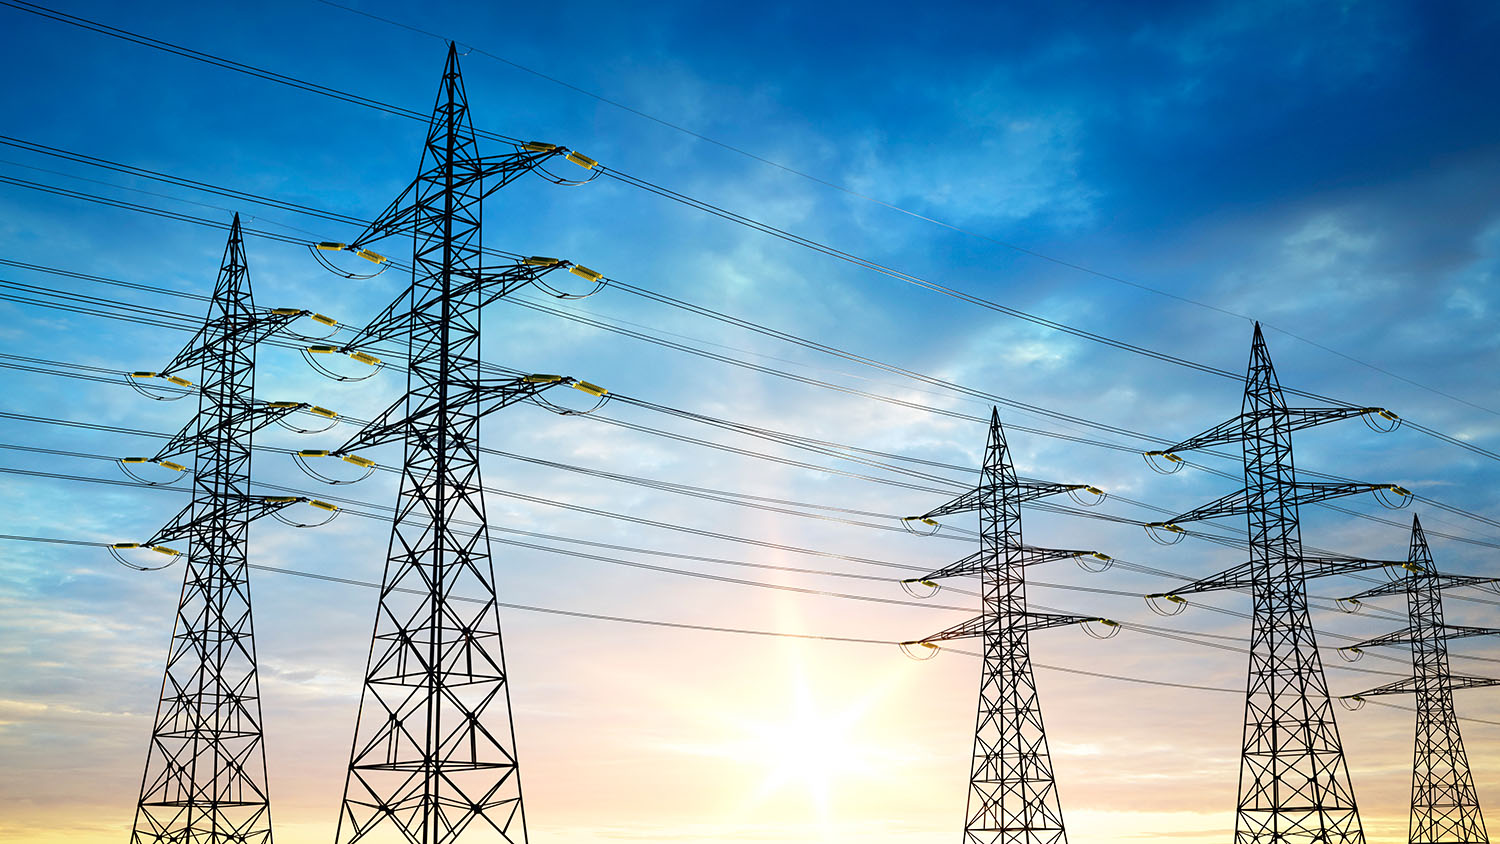 Pylons in front of a sunny and blue sky